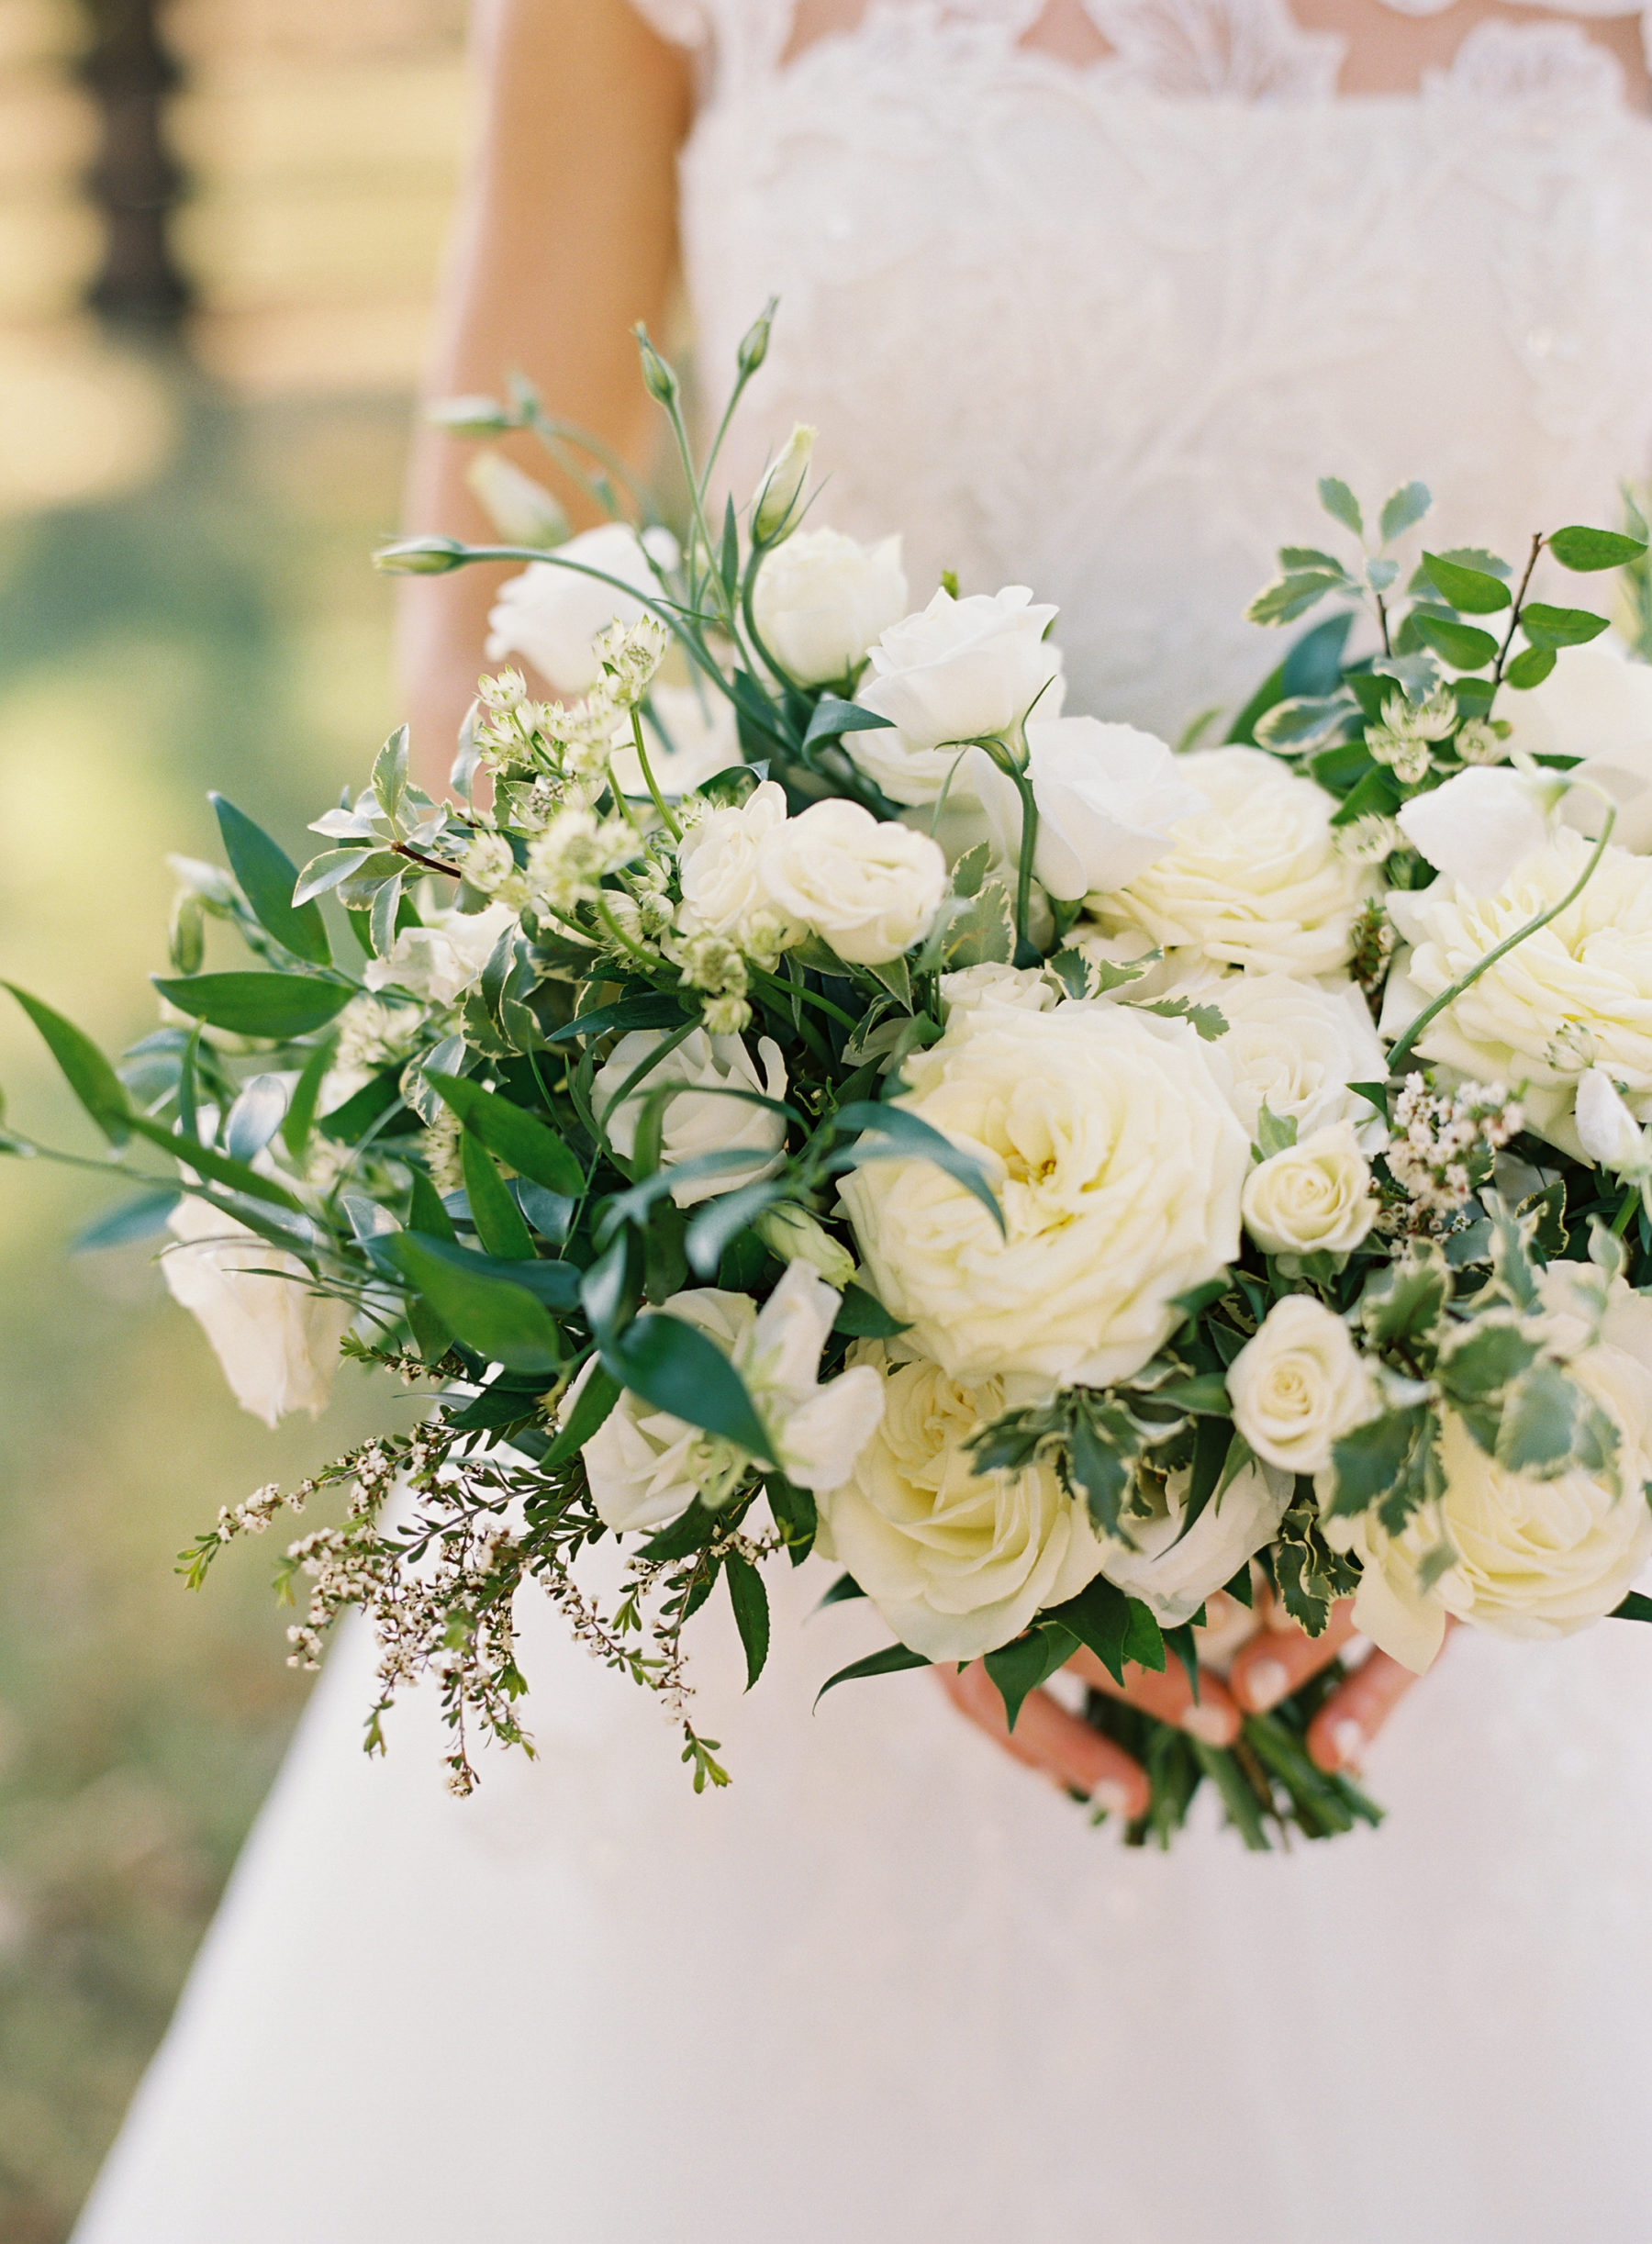 White and greenery wedding bouquet by Wildflowers LLC for fall Nashville wedding